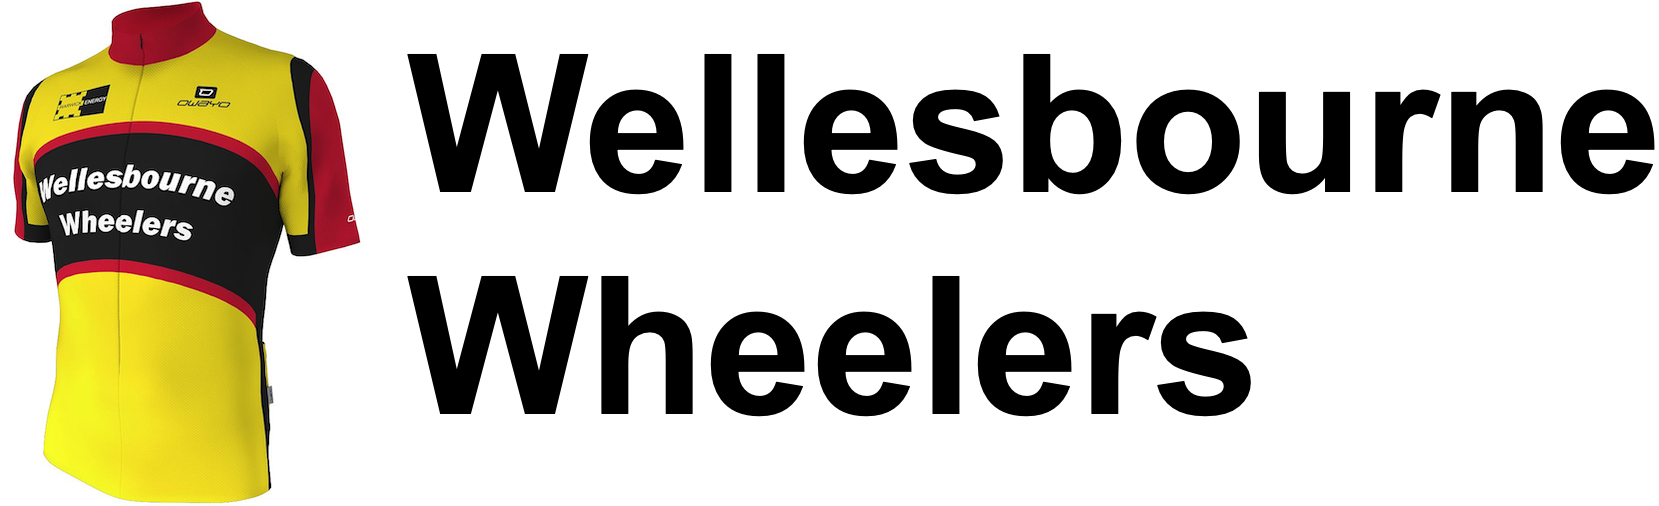 Wellesbourne Wheelers : CTC Affiliated Club No. 90095425